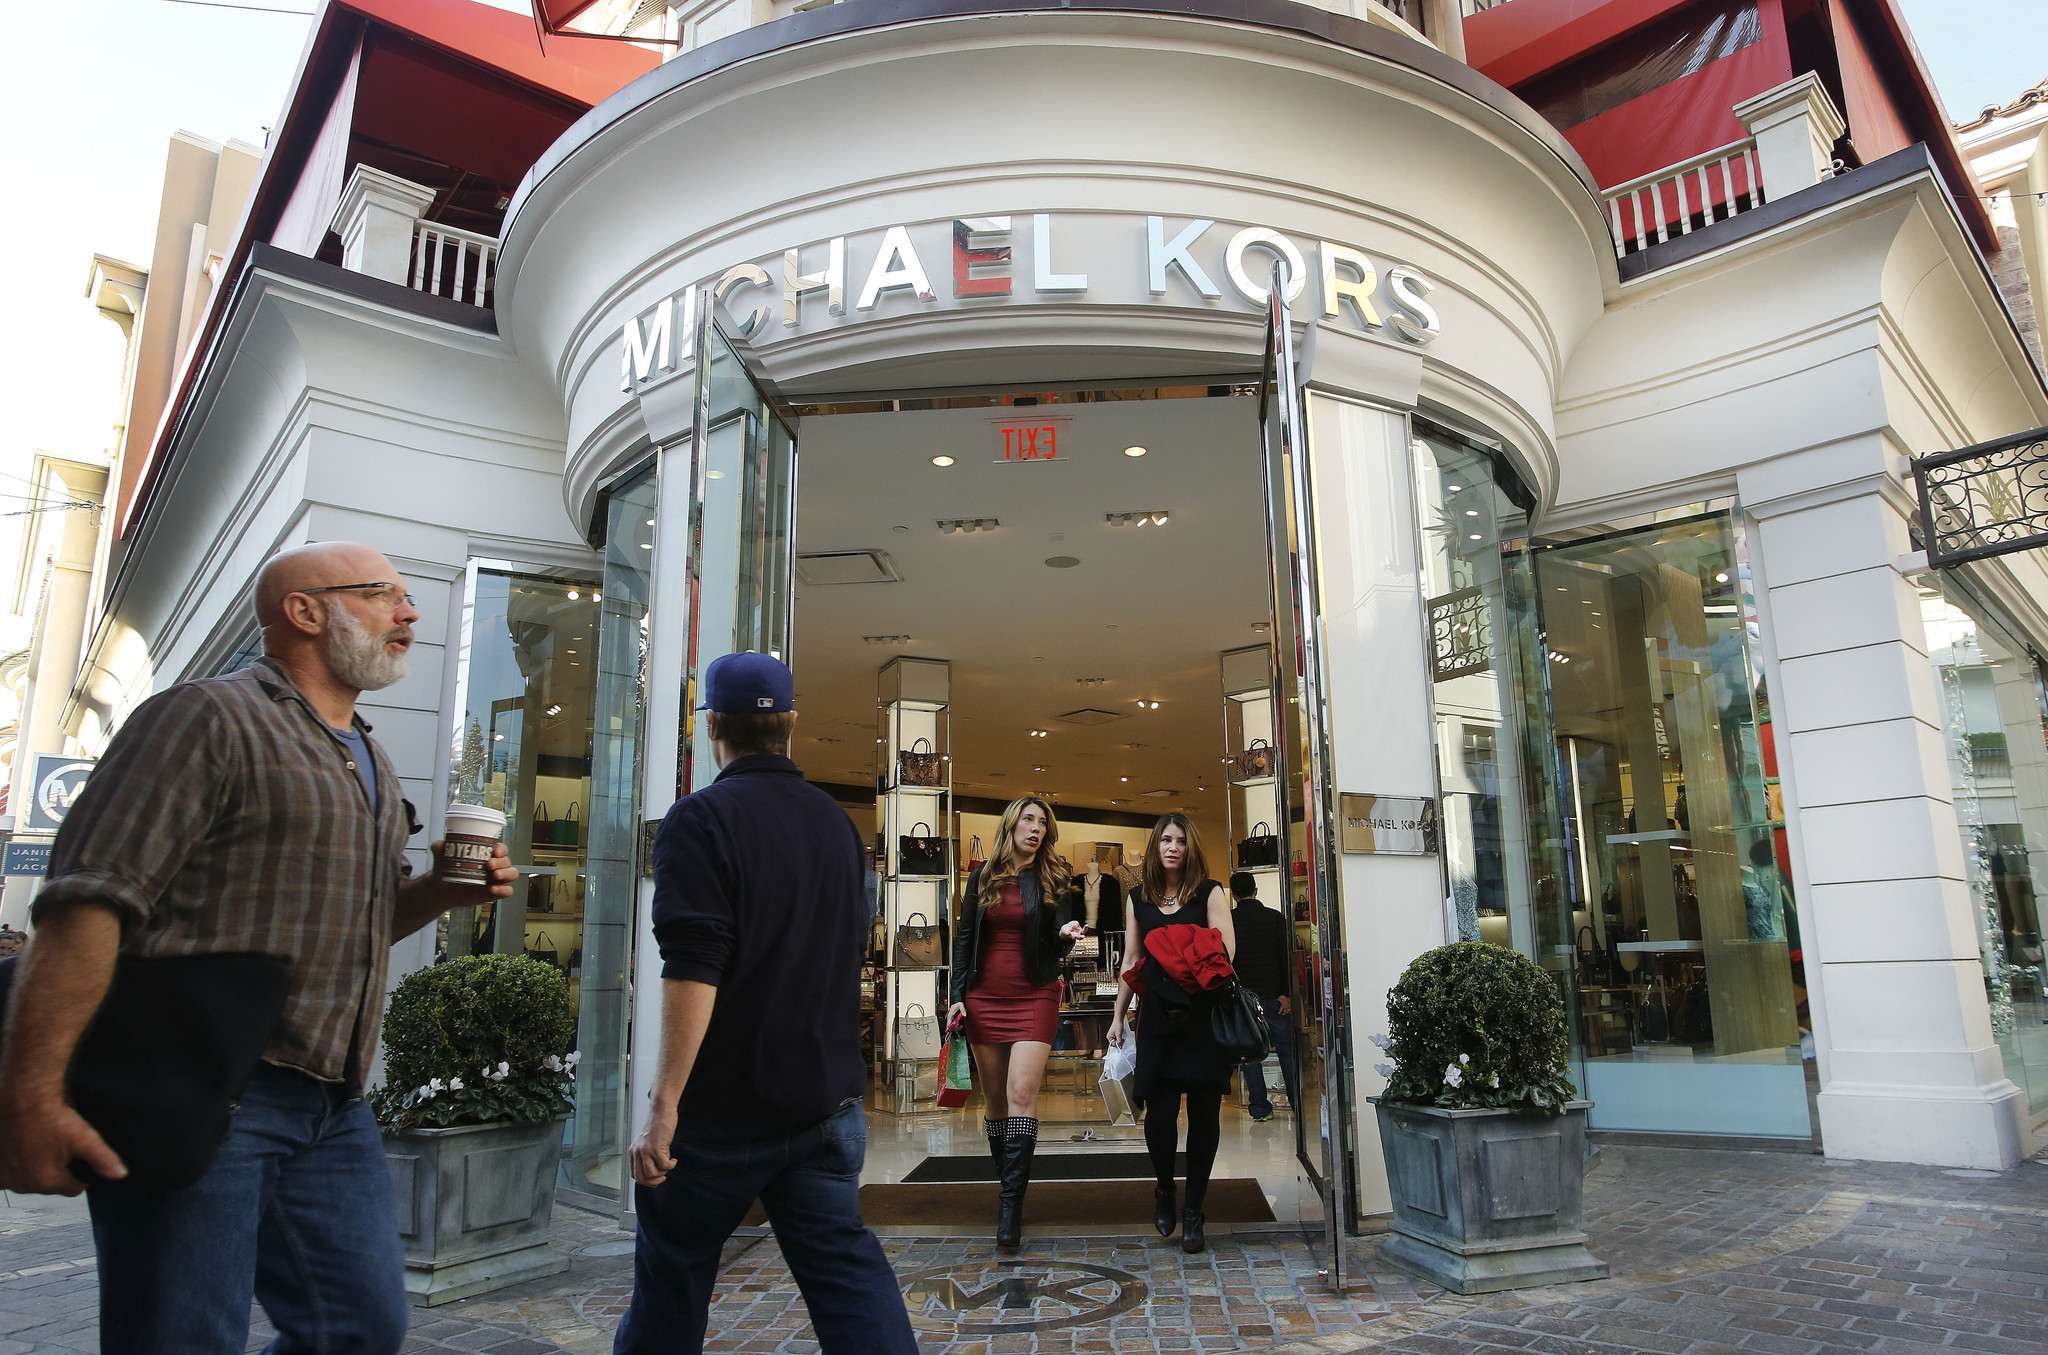 michael kors to close up to 125 stores in the next two years as it focuses on asia la times. Black Bedroom Furniture Sets. Home Design Ideas